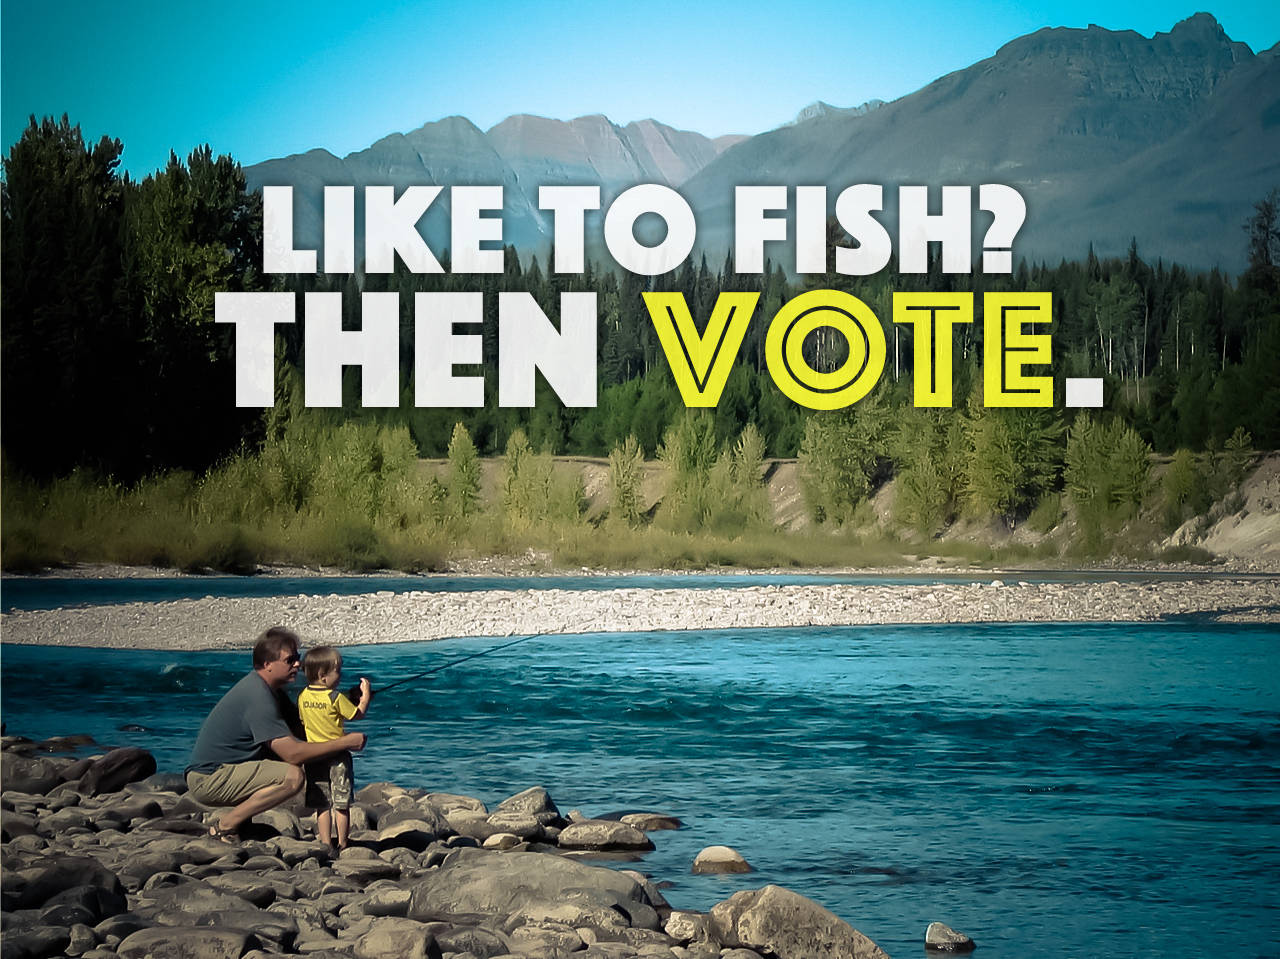 Like to Fish? Then Vote.